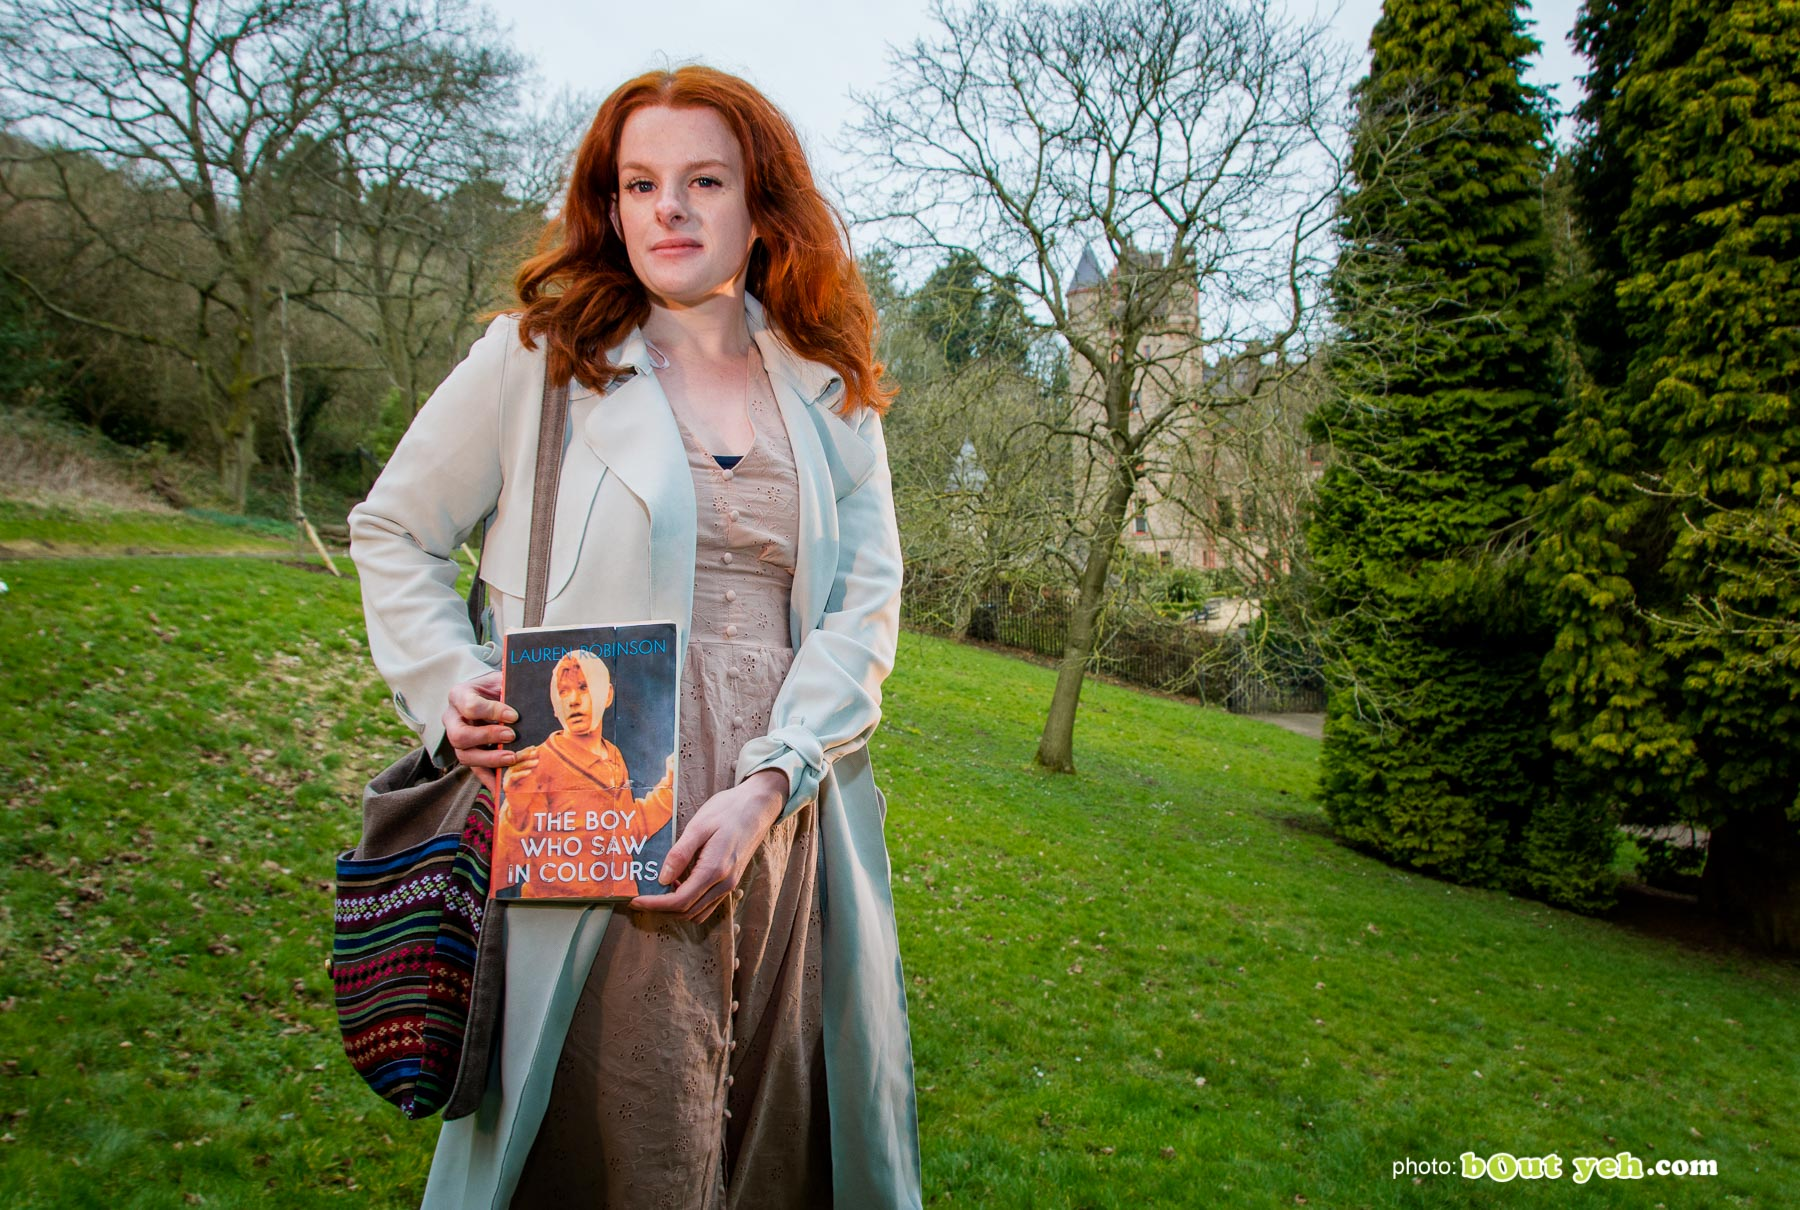 Author Lauren Robinson photographed in the grounds of Belfast Castle by Bout Yeh photographers Belfast - photo 0898